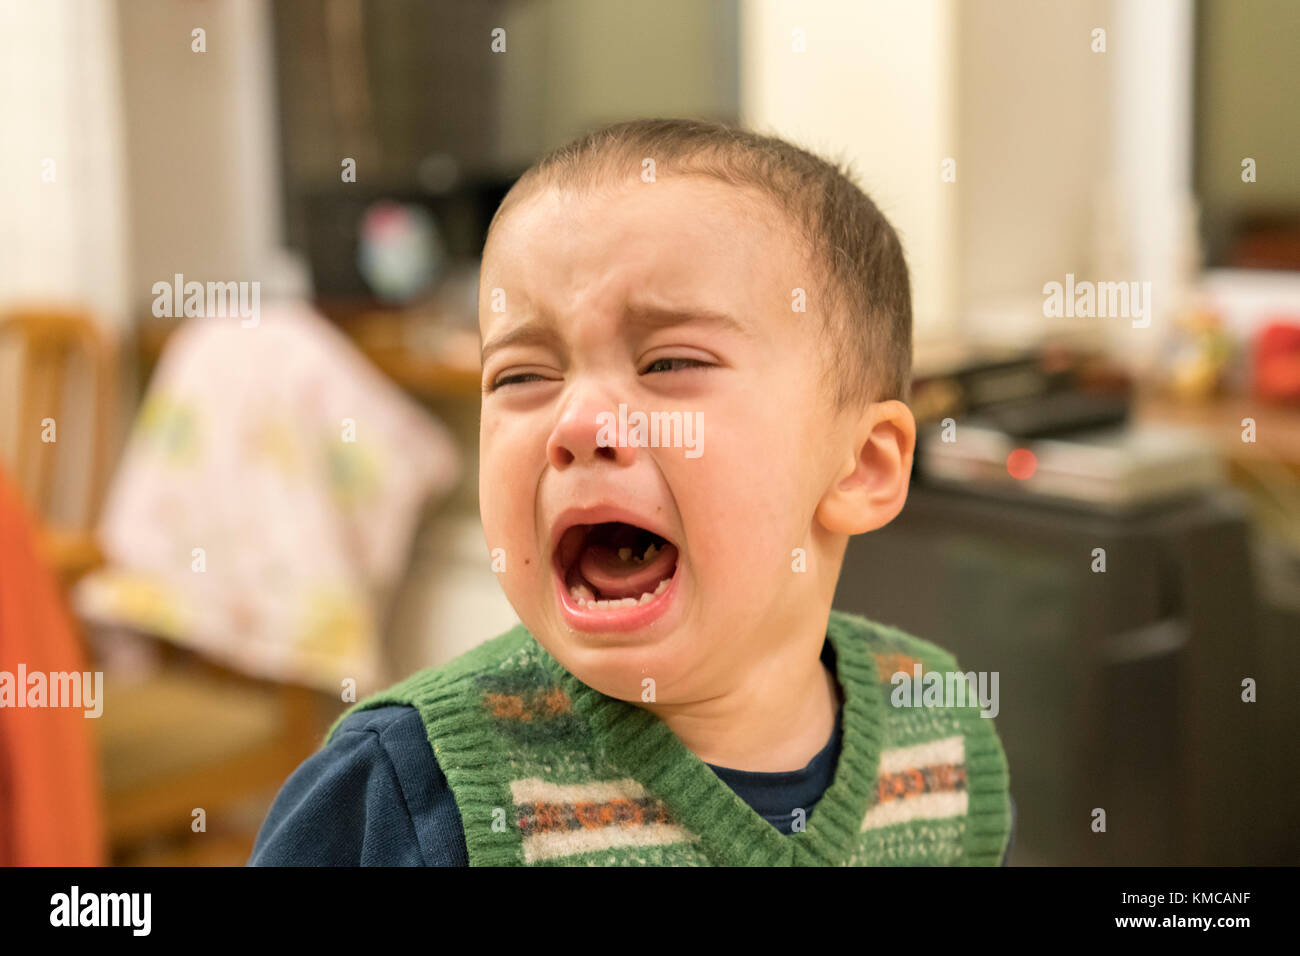 Baby boy loudly cries - Stock Image